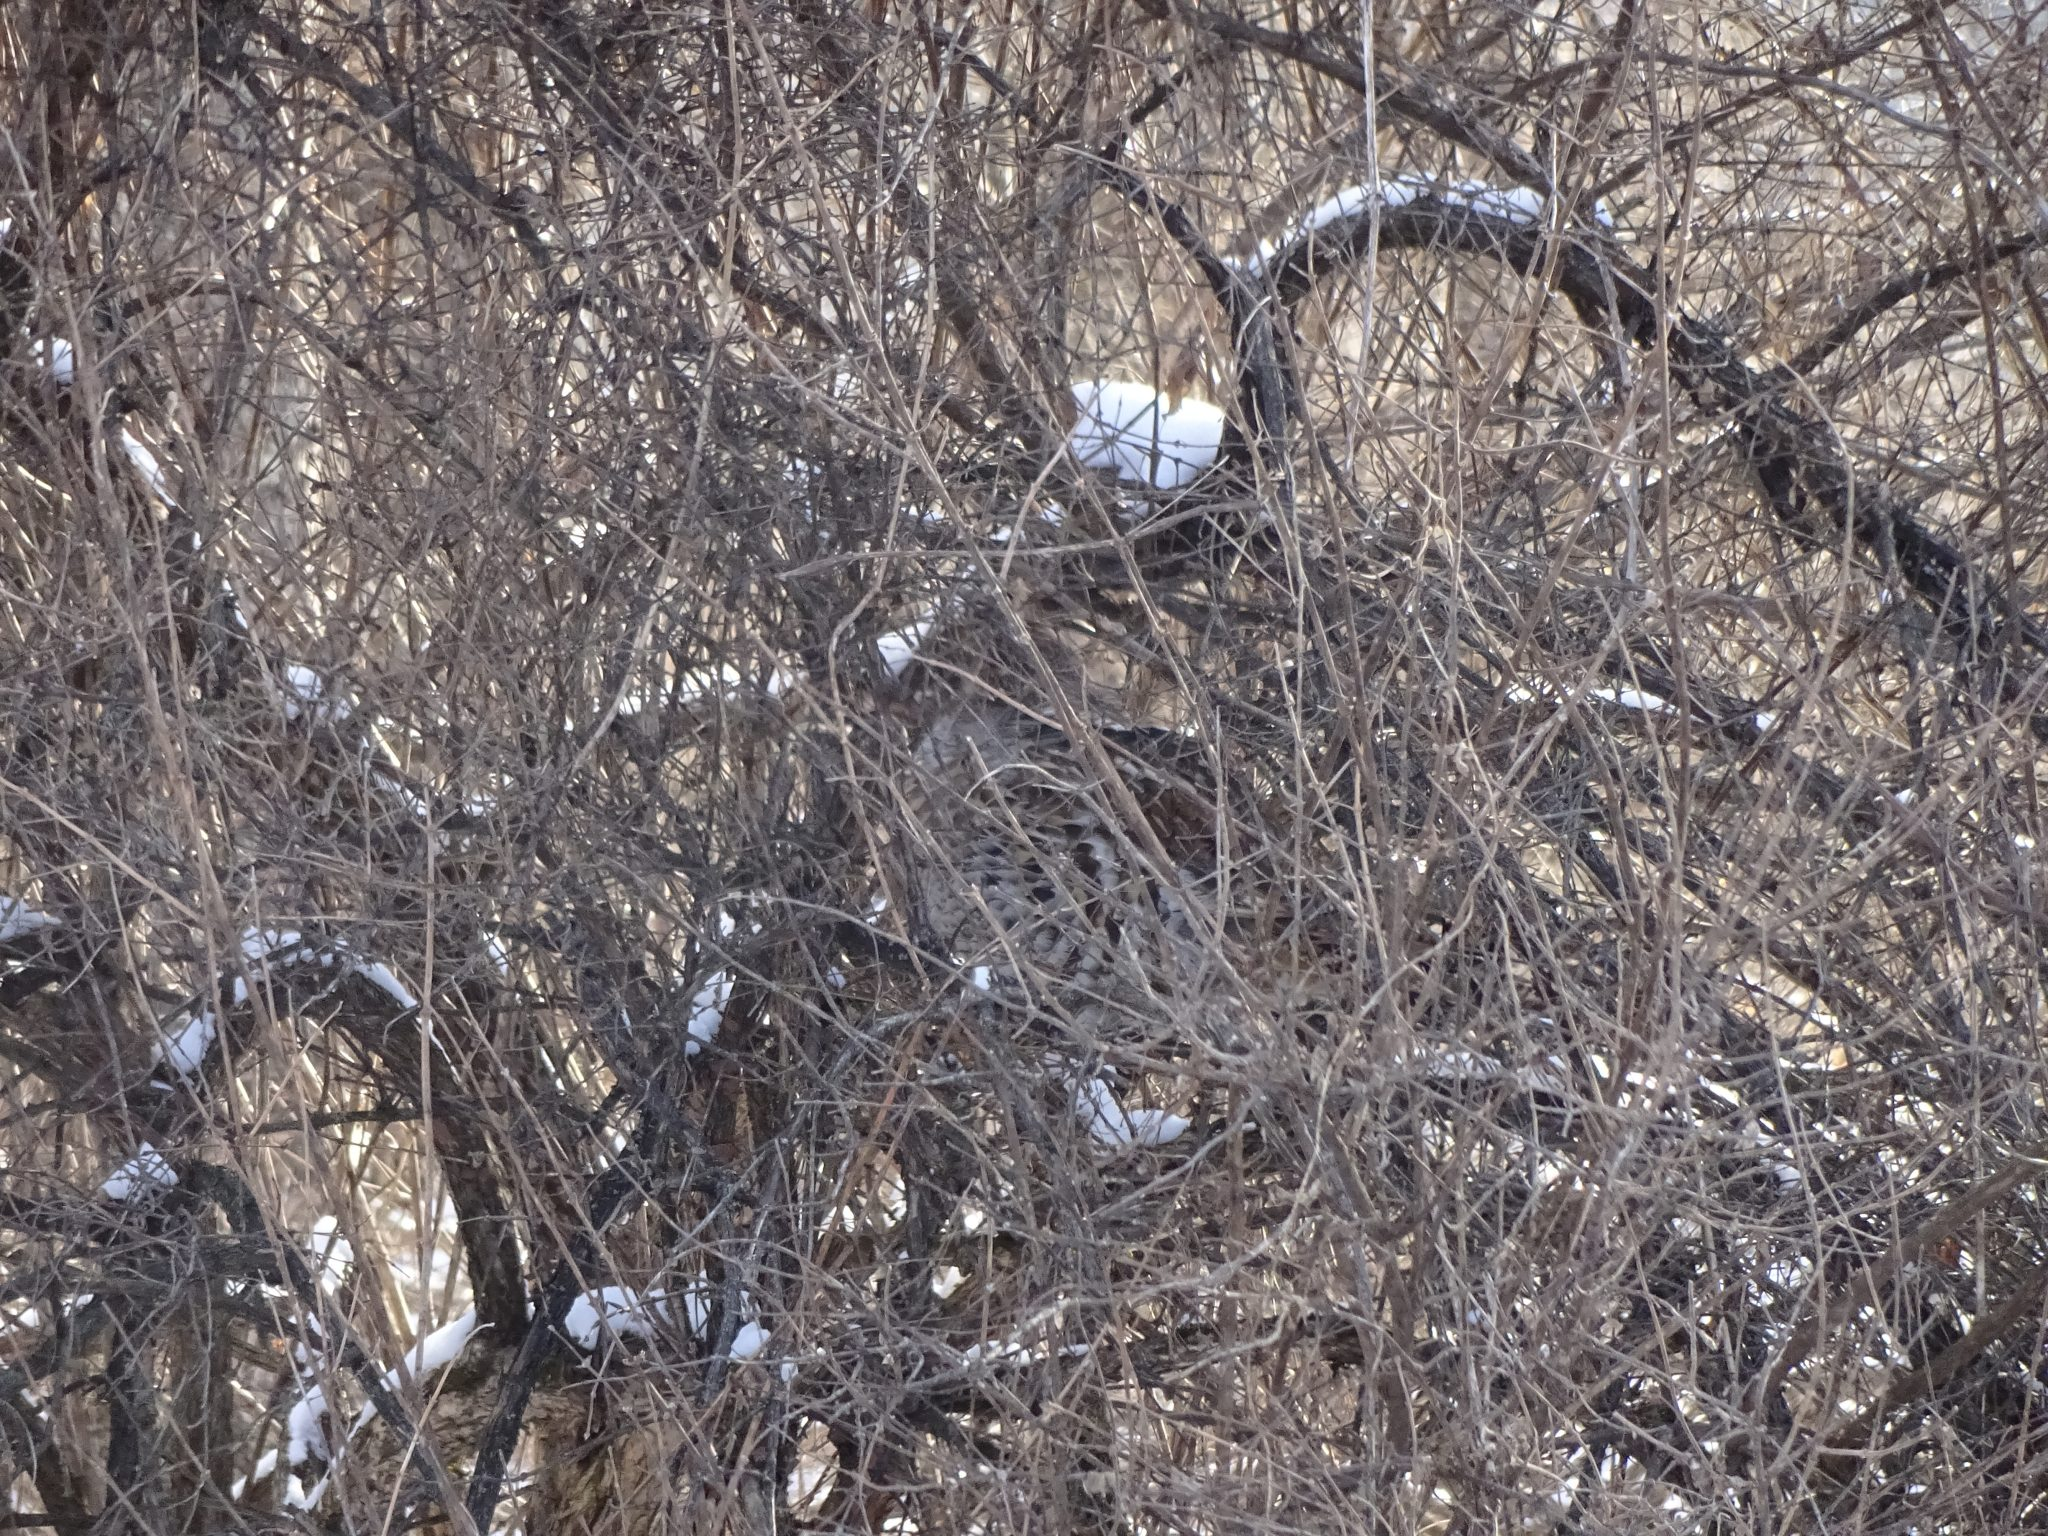 Can You Spot the Grouse?